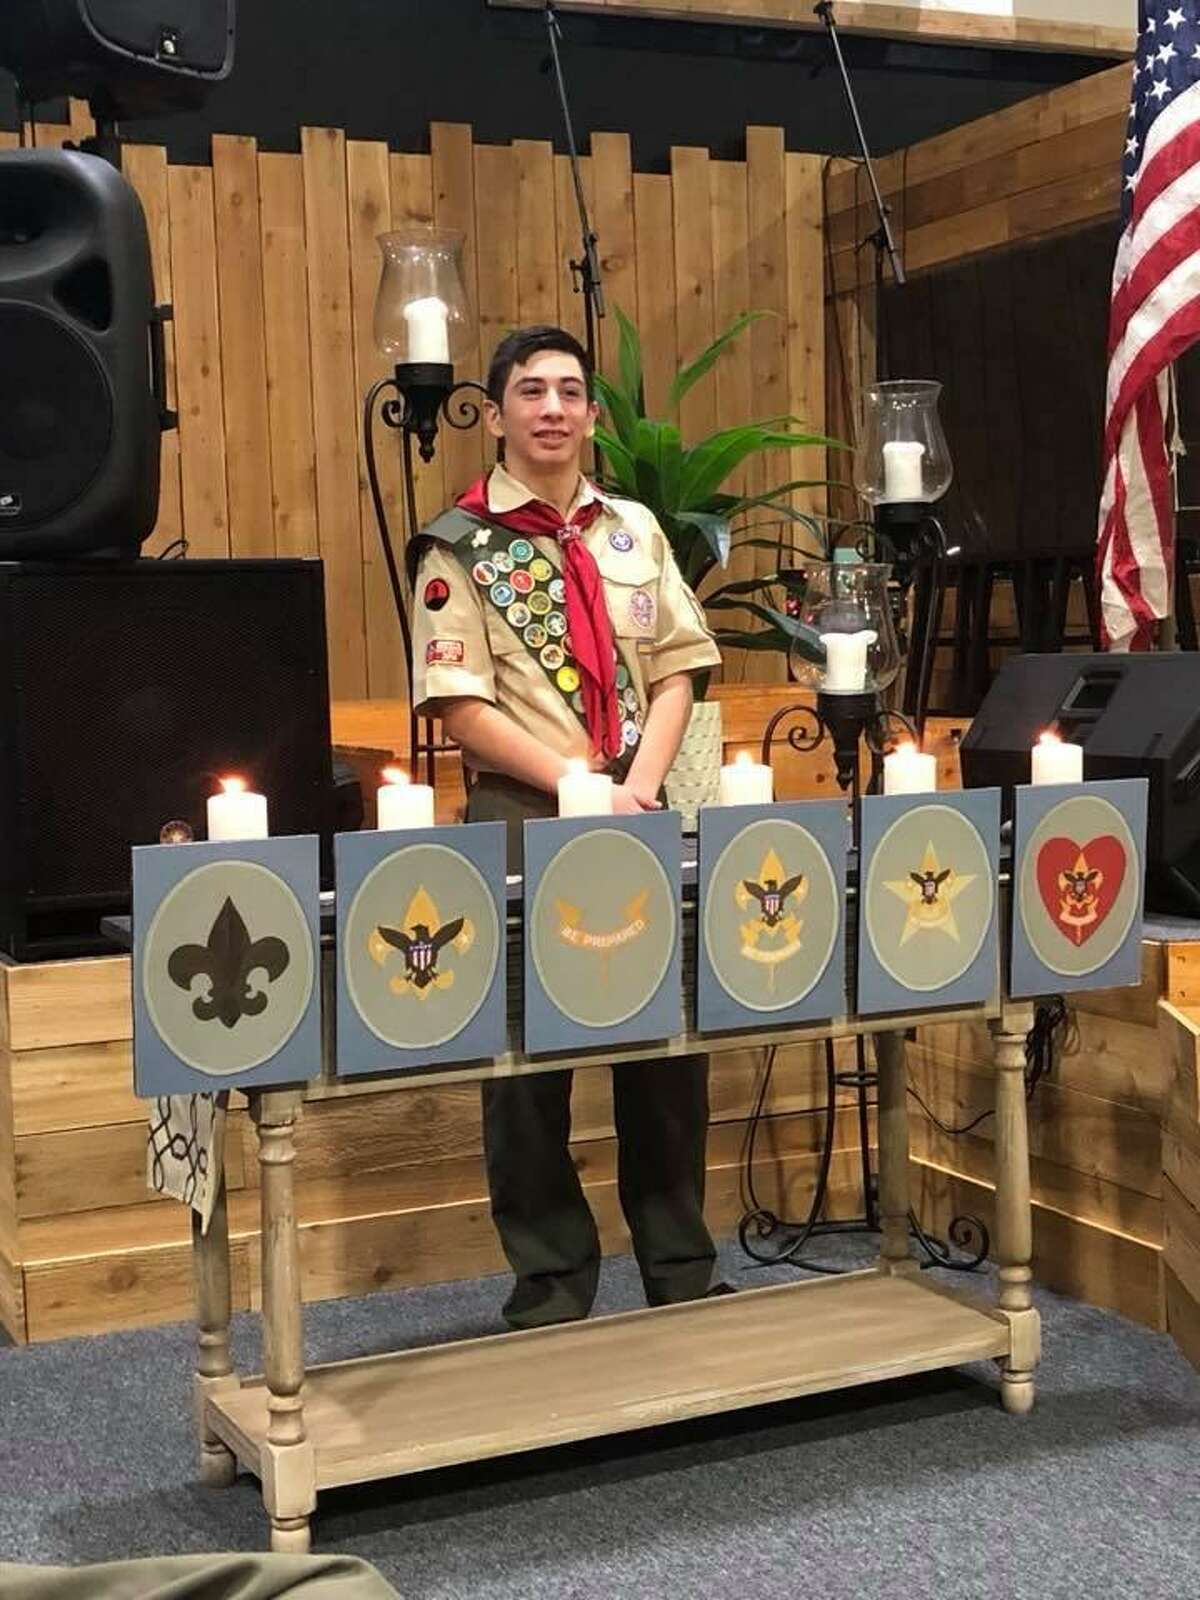 Samuel Matthew Lopez reached Boy Scout's highest rank by earning an Eagle Scout award; his greatest achievement, at Troop 471.